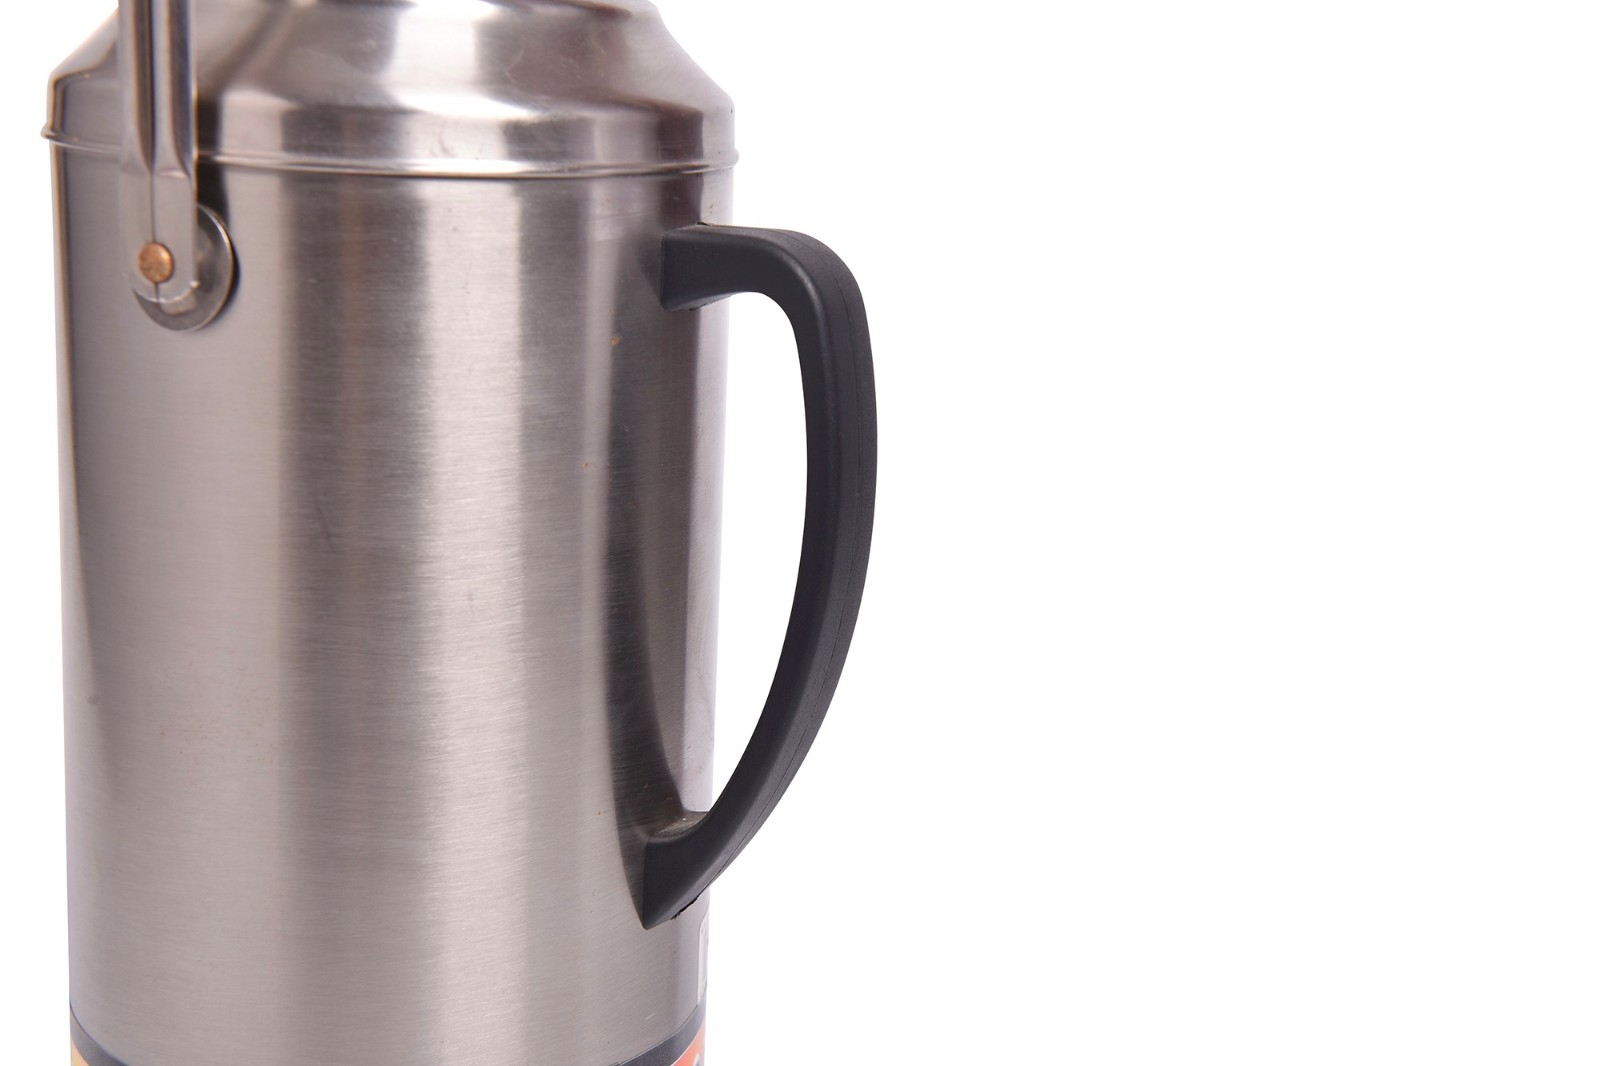 High quality 3.2L Stainless steel body thermos Quotes,China 3.2L Stainless steel body thermos Factory,3.2L Stainless steel body thermos Purchasing